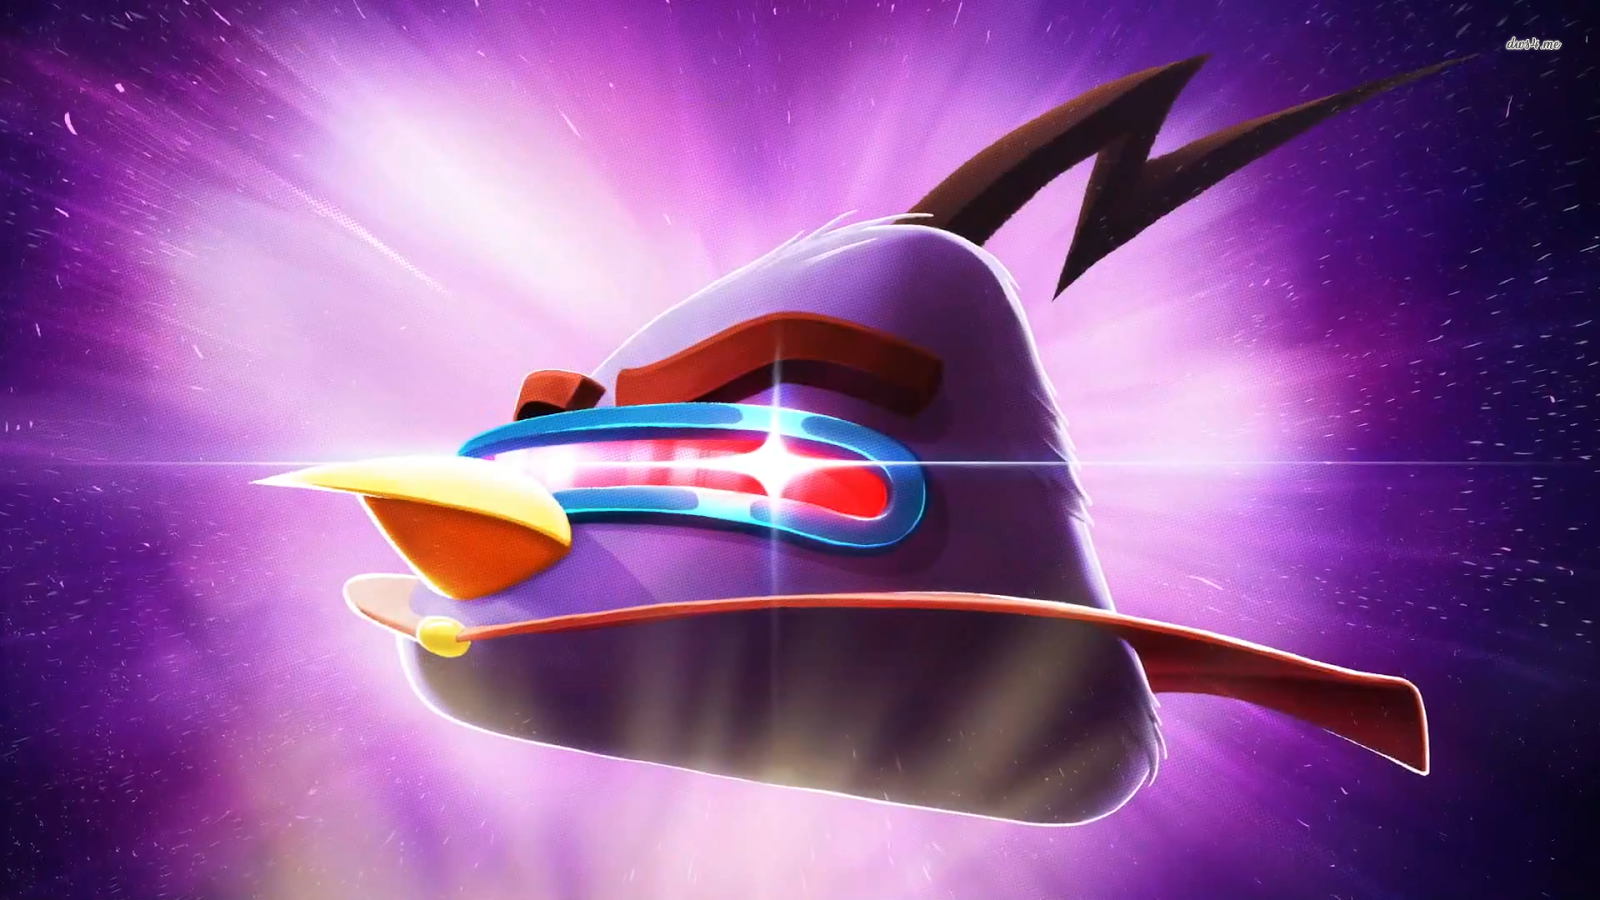 Angry Bird Space Wallpaper 3d 3d Hd Wallpapers Angry Birds Wallpapers